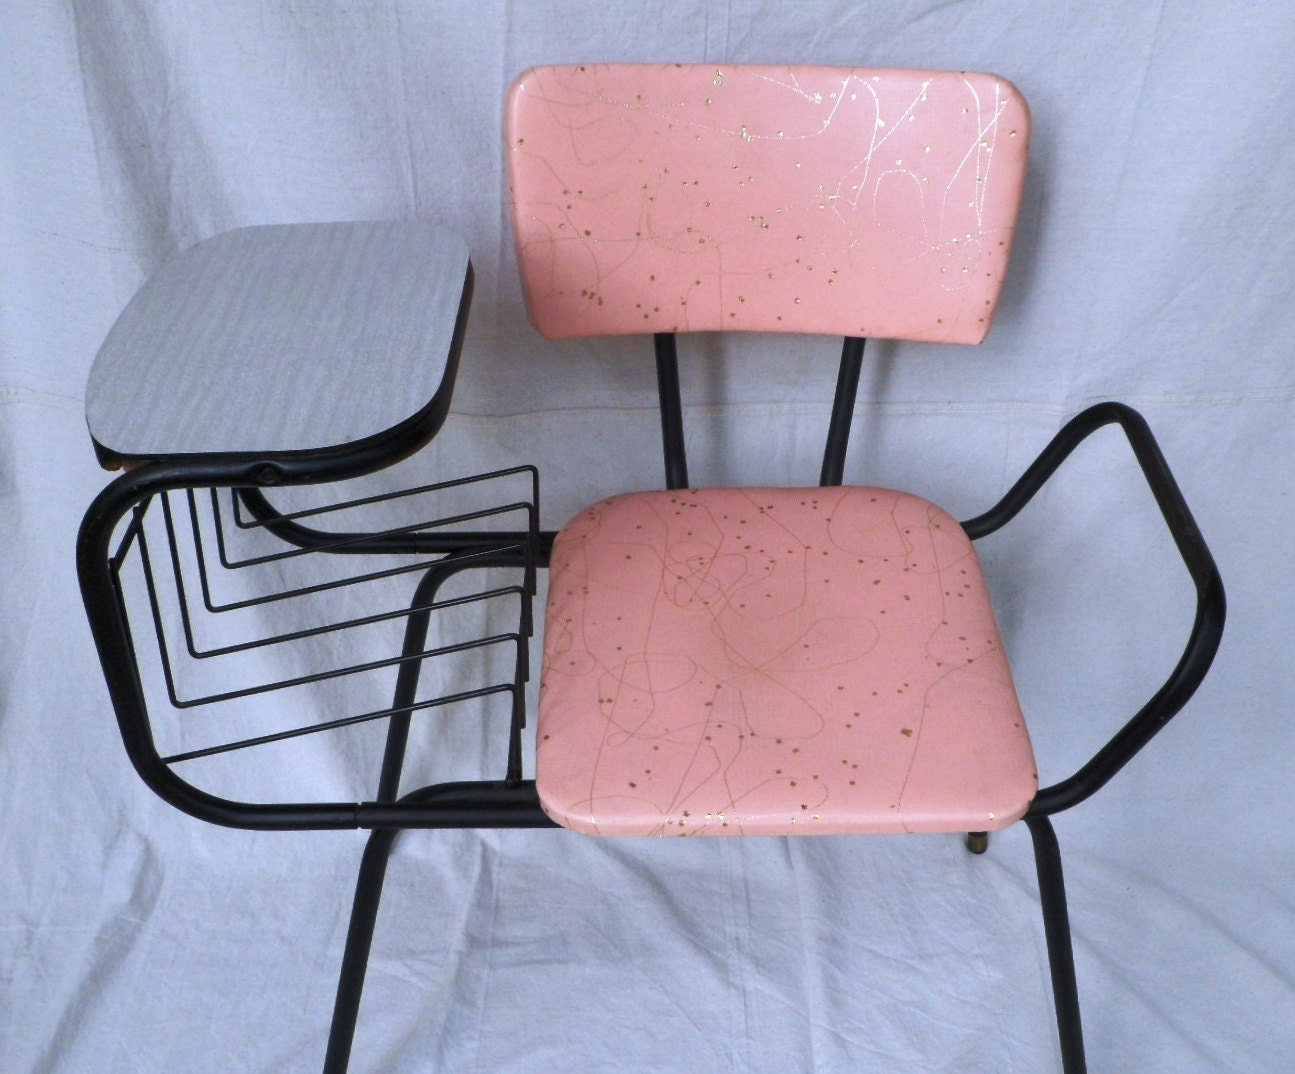 1950s pink and black phone seat